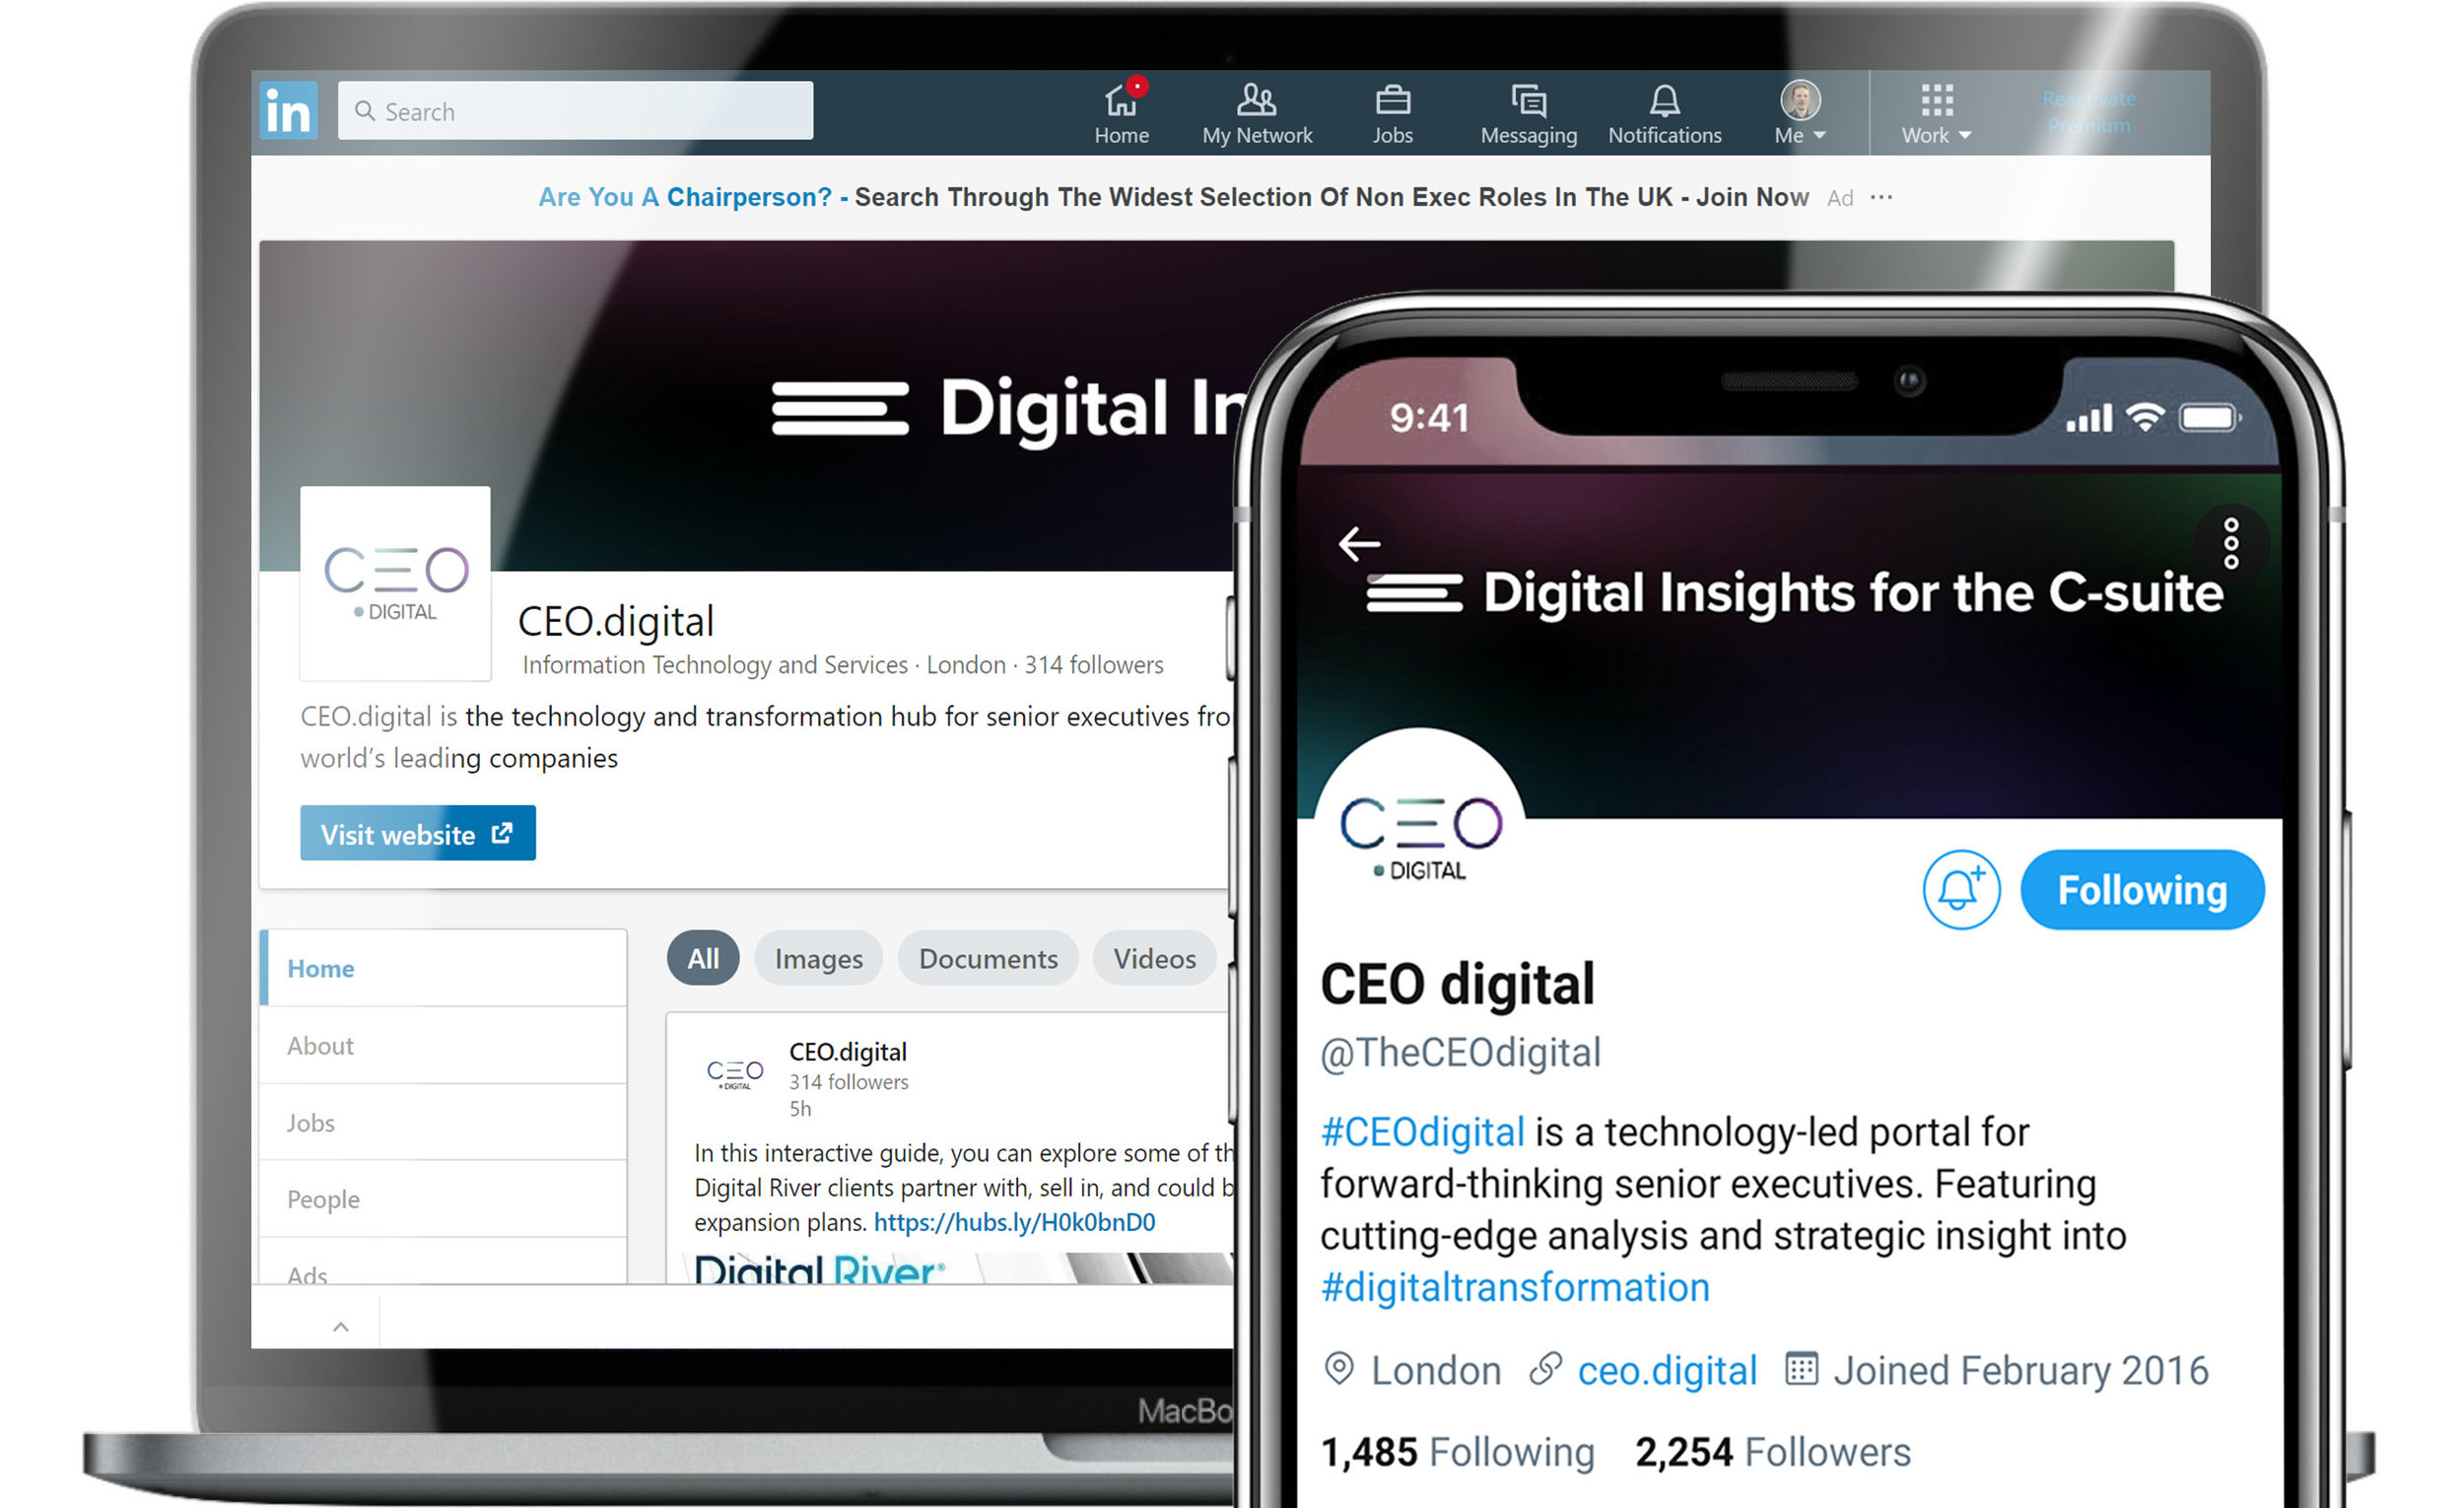 CEO.digital branding applied to LinkedIn and Twitter profiles